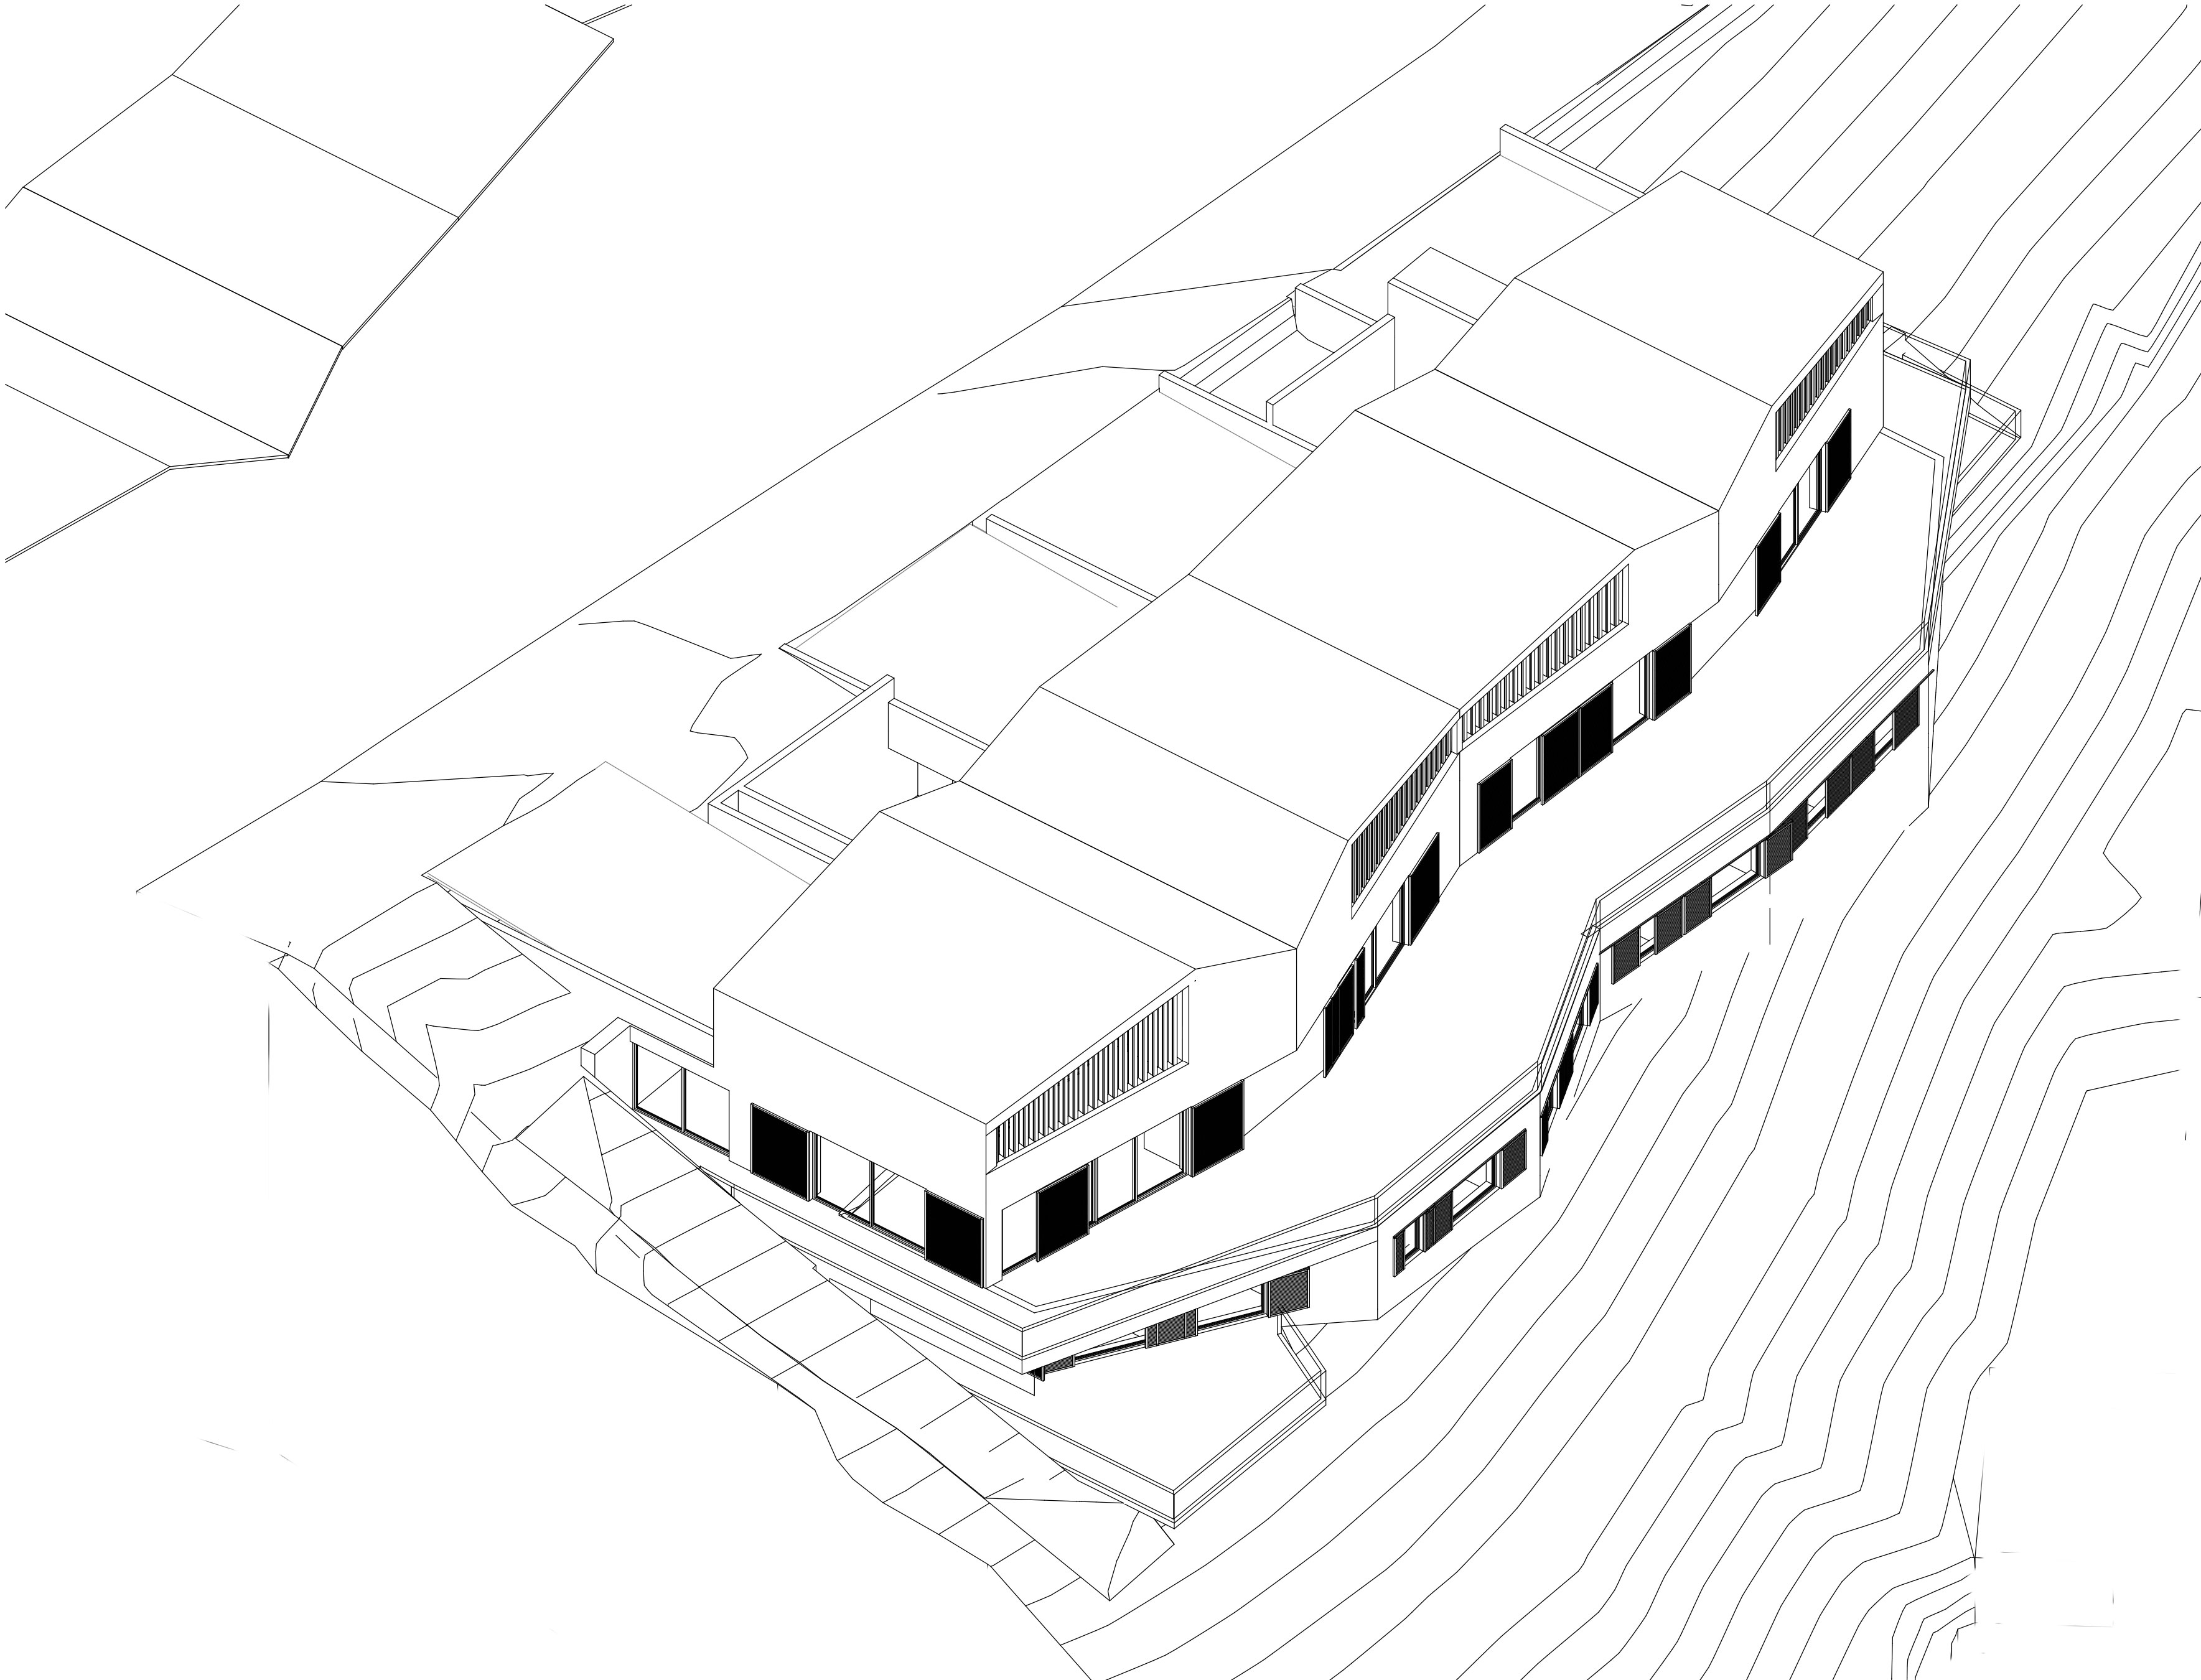 ... And Architecture: The Plans Follow The Sloping Ground, Generating An  Unusual Volume Whose Different Gable Roofs Are Inspired By Swiss Mountains.